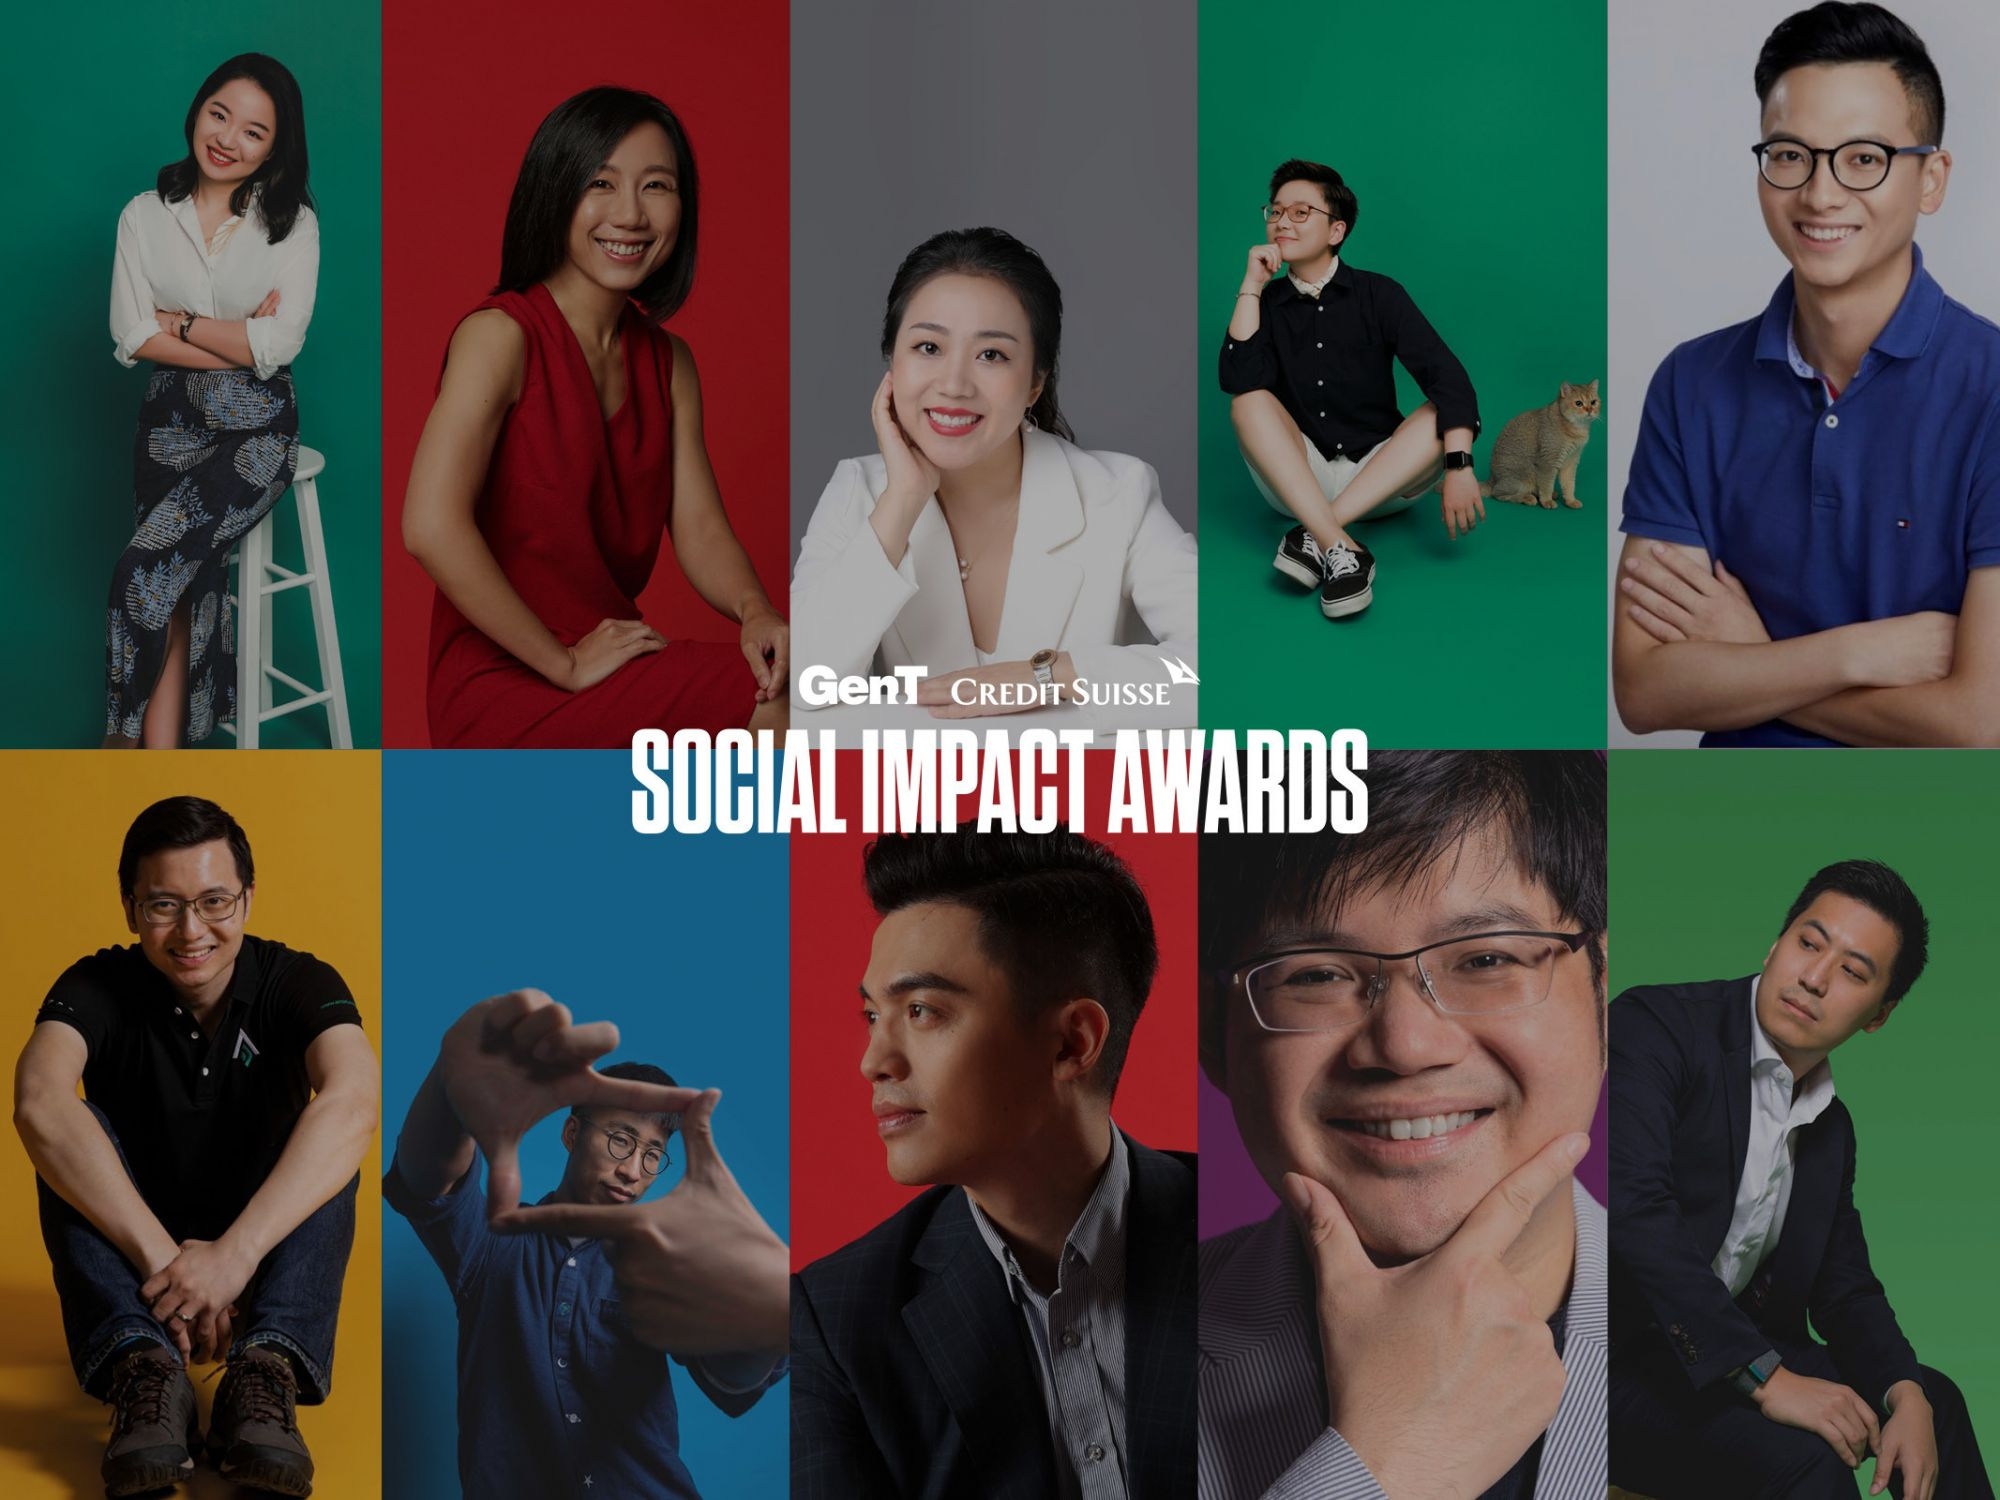 Here Are All 10 Winners Of This Year's Social Impact Awards